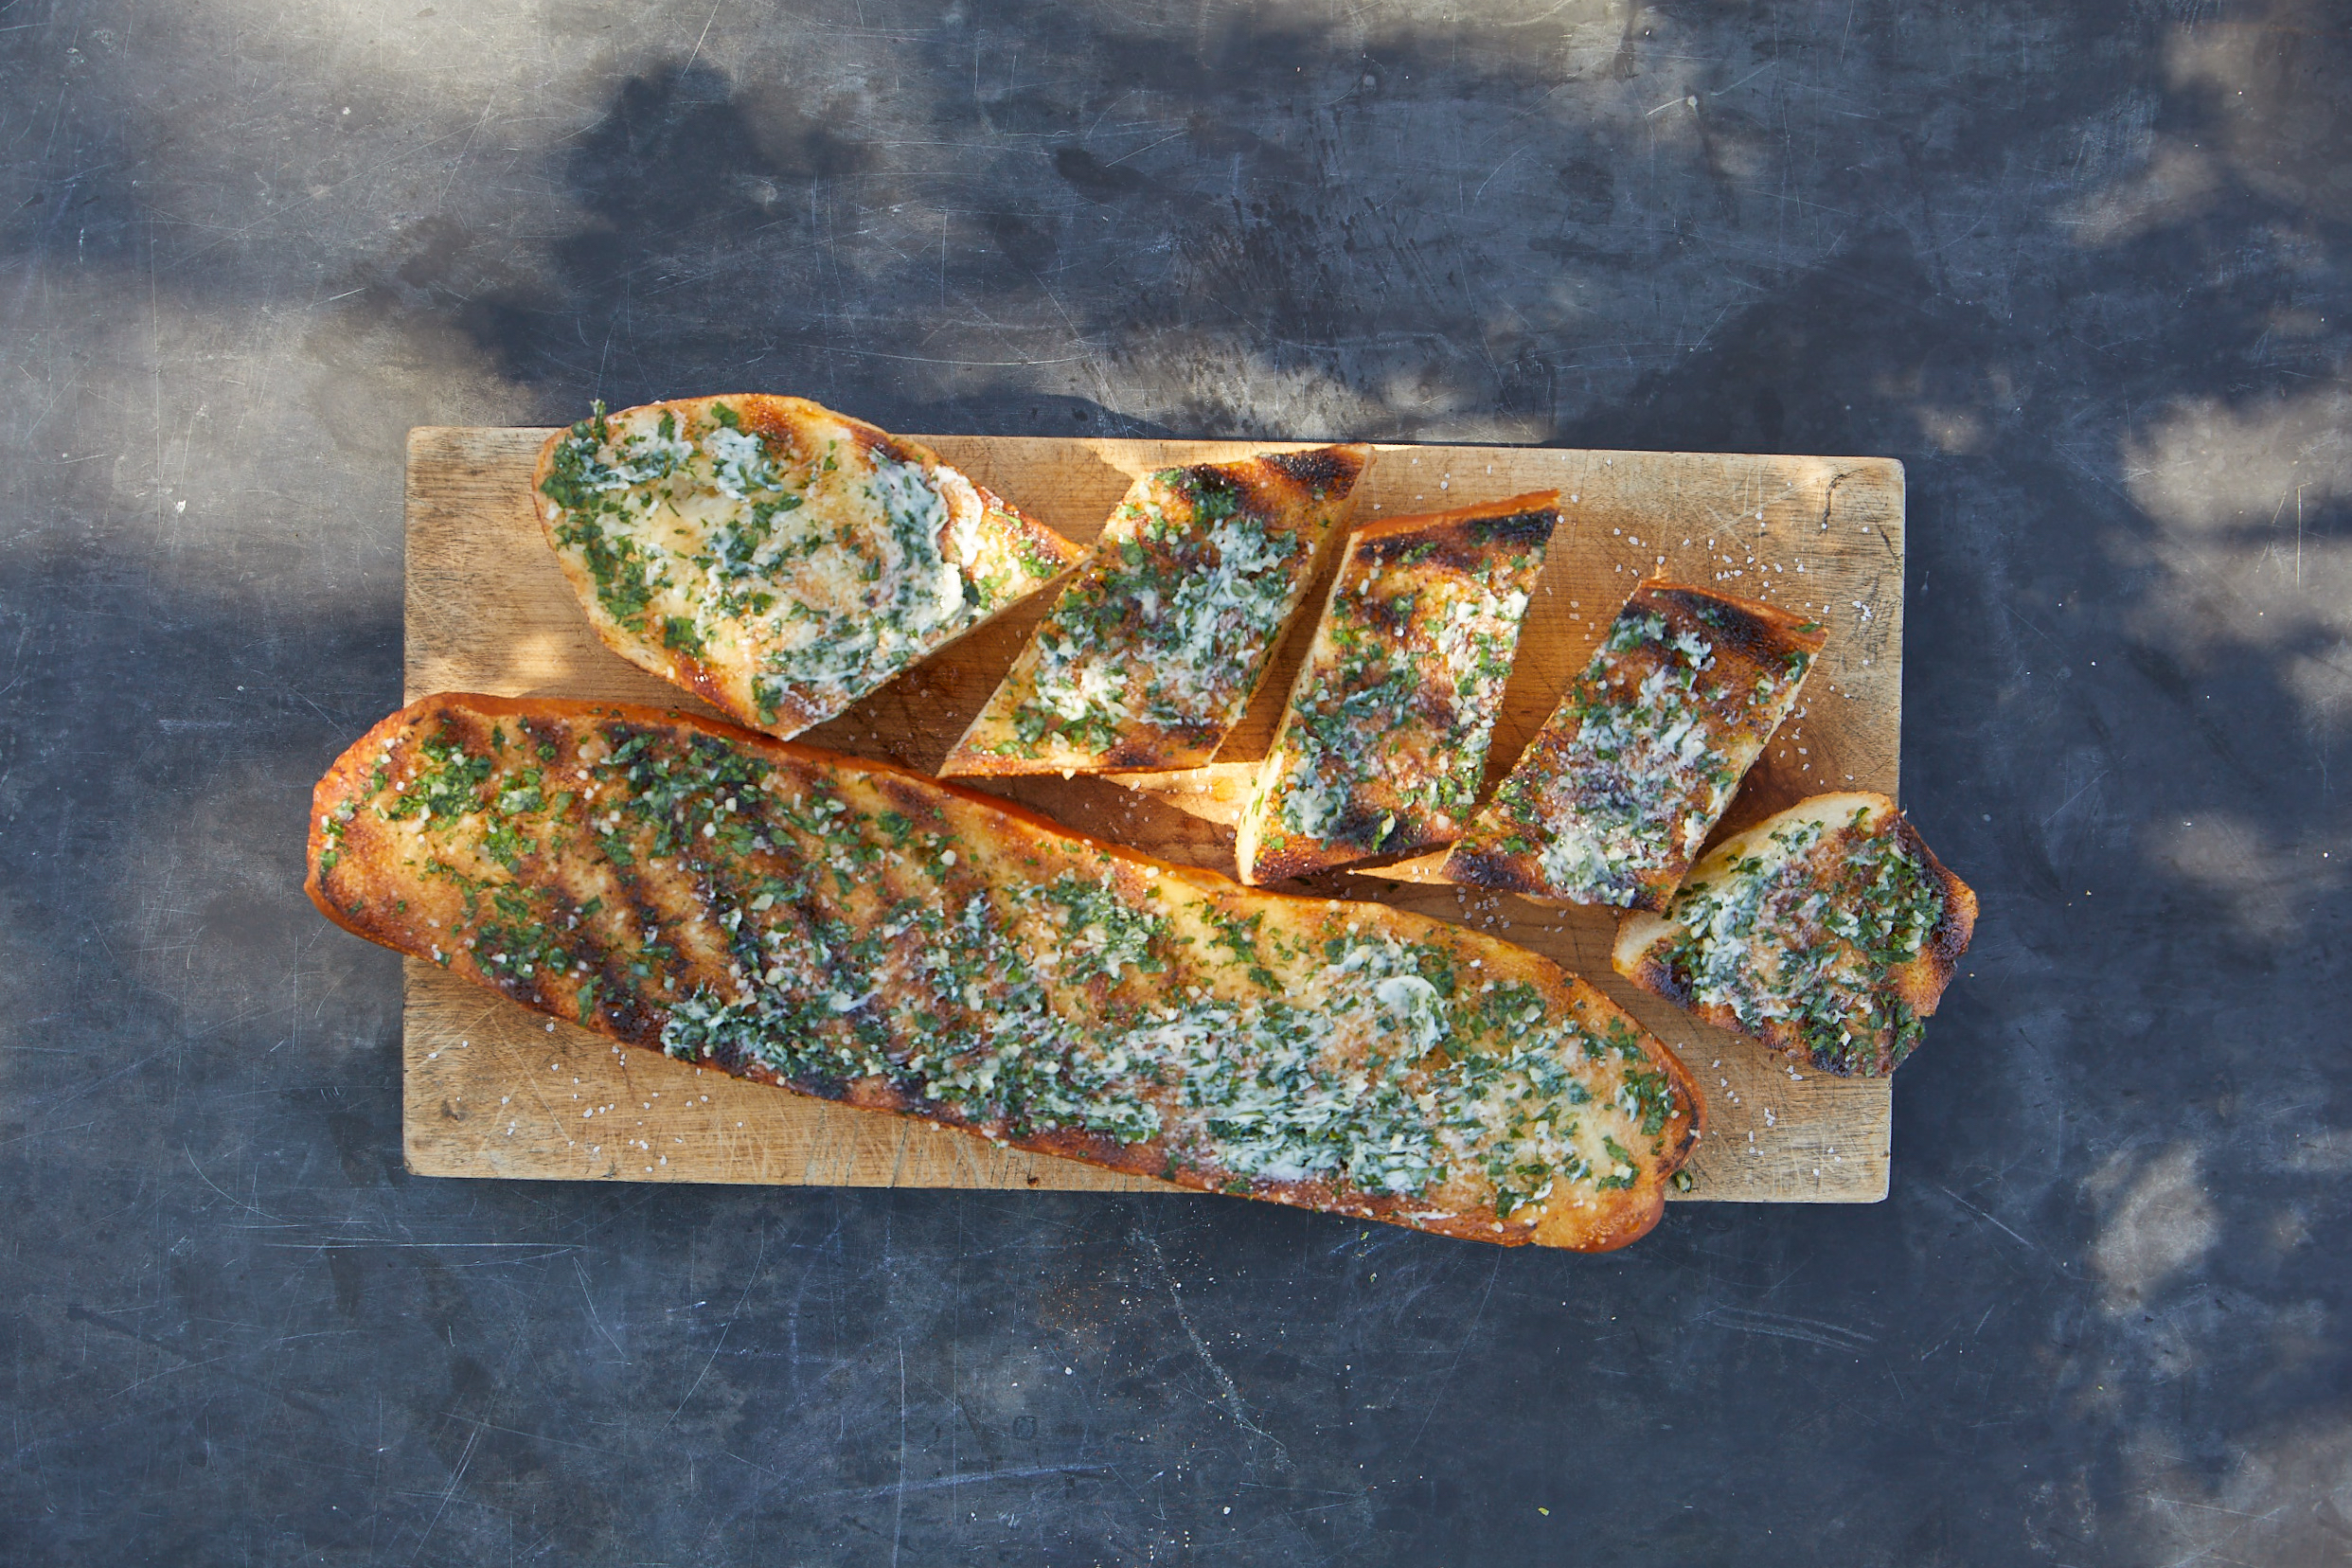 Grilled Garlic Bread with Herb Butter